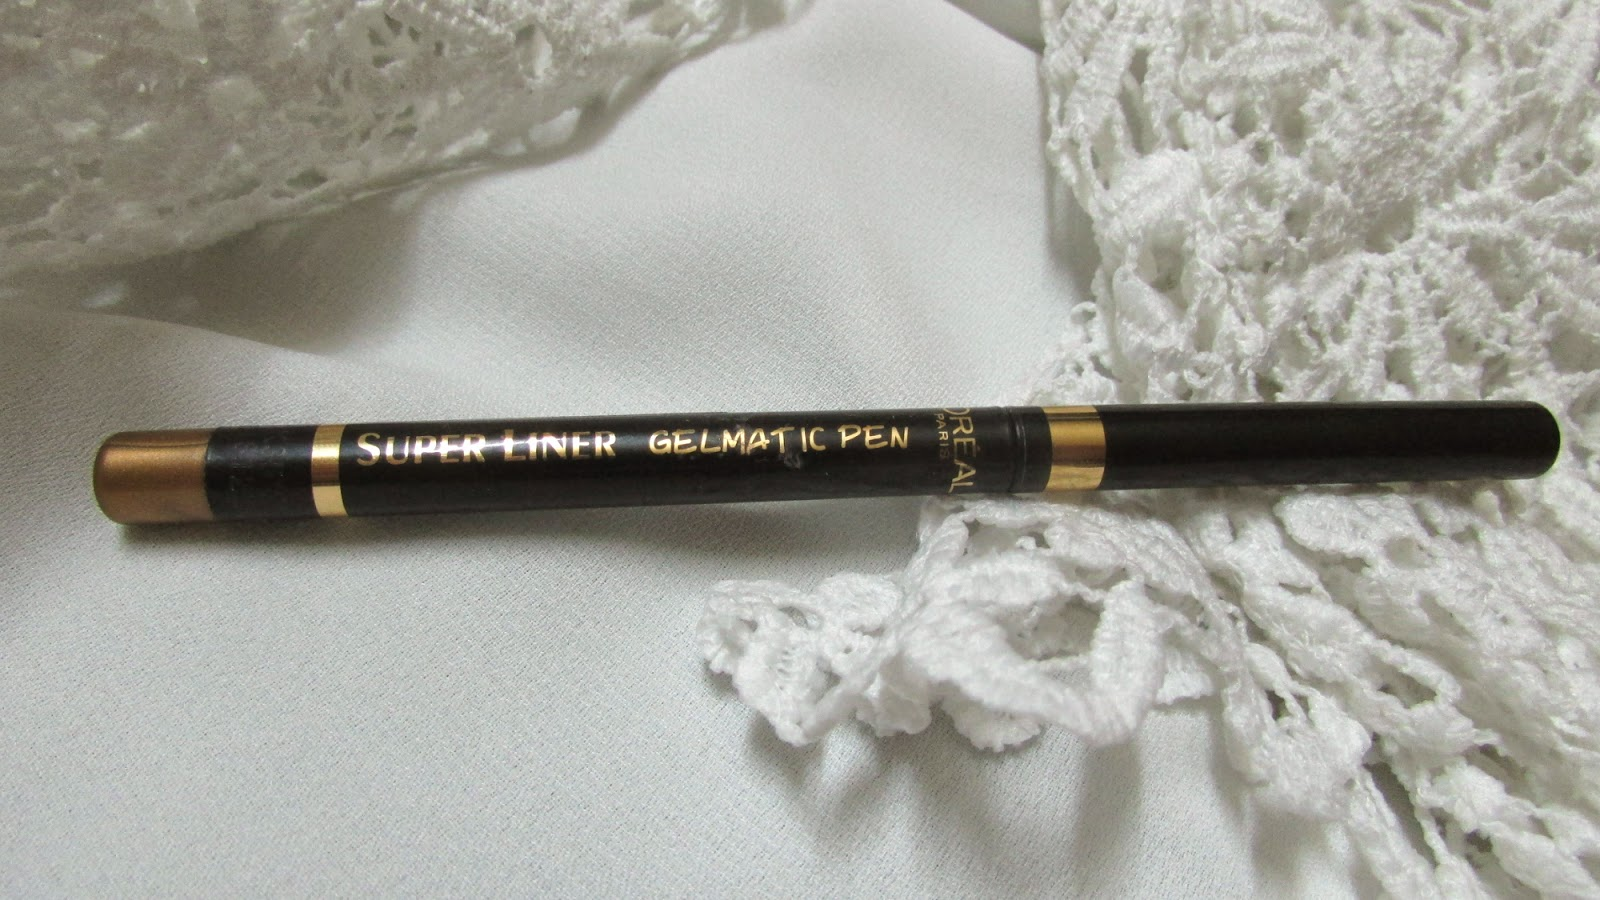 double flick eyeliner, double flick gold eyeliner, fall makeup, loreal, loreal makeup, makeup, party makeup, red lips, triple flick eyeliner, Super Liner Gel Matic Pen,Loreal Color Riche Lipcolor,Loreal Super Liner , Black Lacqure, loreal makeup,beauty , fashion,beauty and fashion,beauty blog, fashion blog , indian beauty blog,indian fashion blog, beauty and fashion blog, indian beauty and fashion blog, indian bloggers, indian beauty bloggers, indian fashion bloggers,indian bloggers online, top 10 indian bloggers, top indian bloggers,top 10 fashion bloggers, indian bloggers on blogspot,home remedies, how to